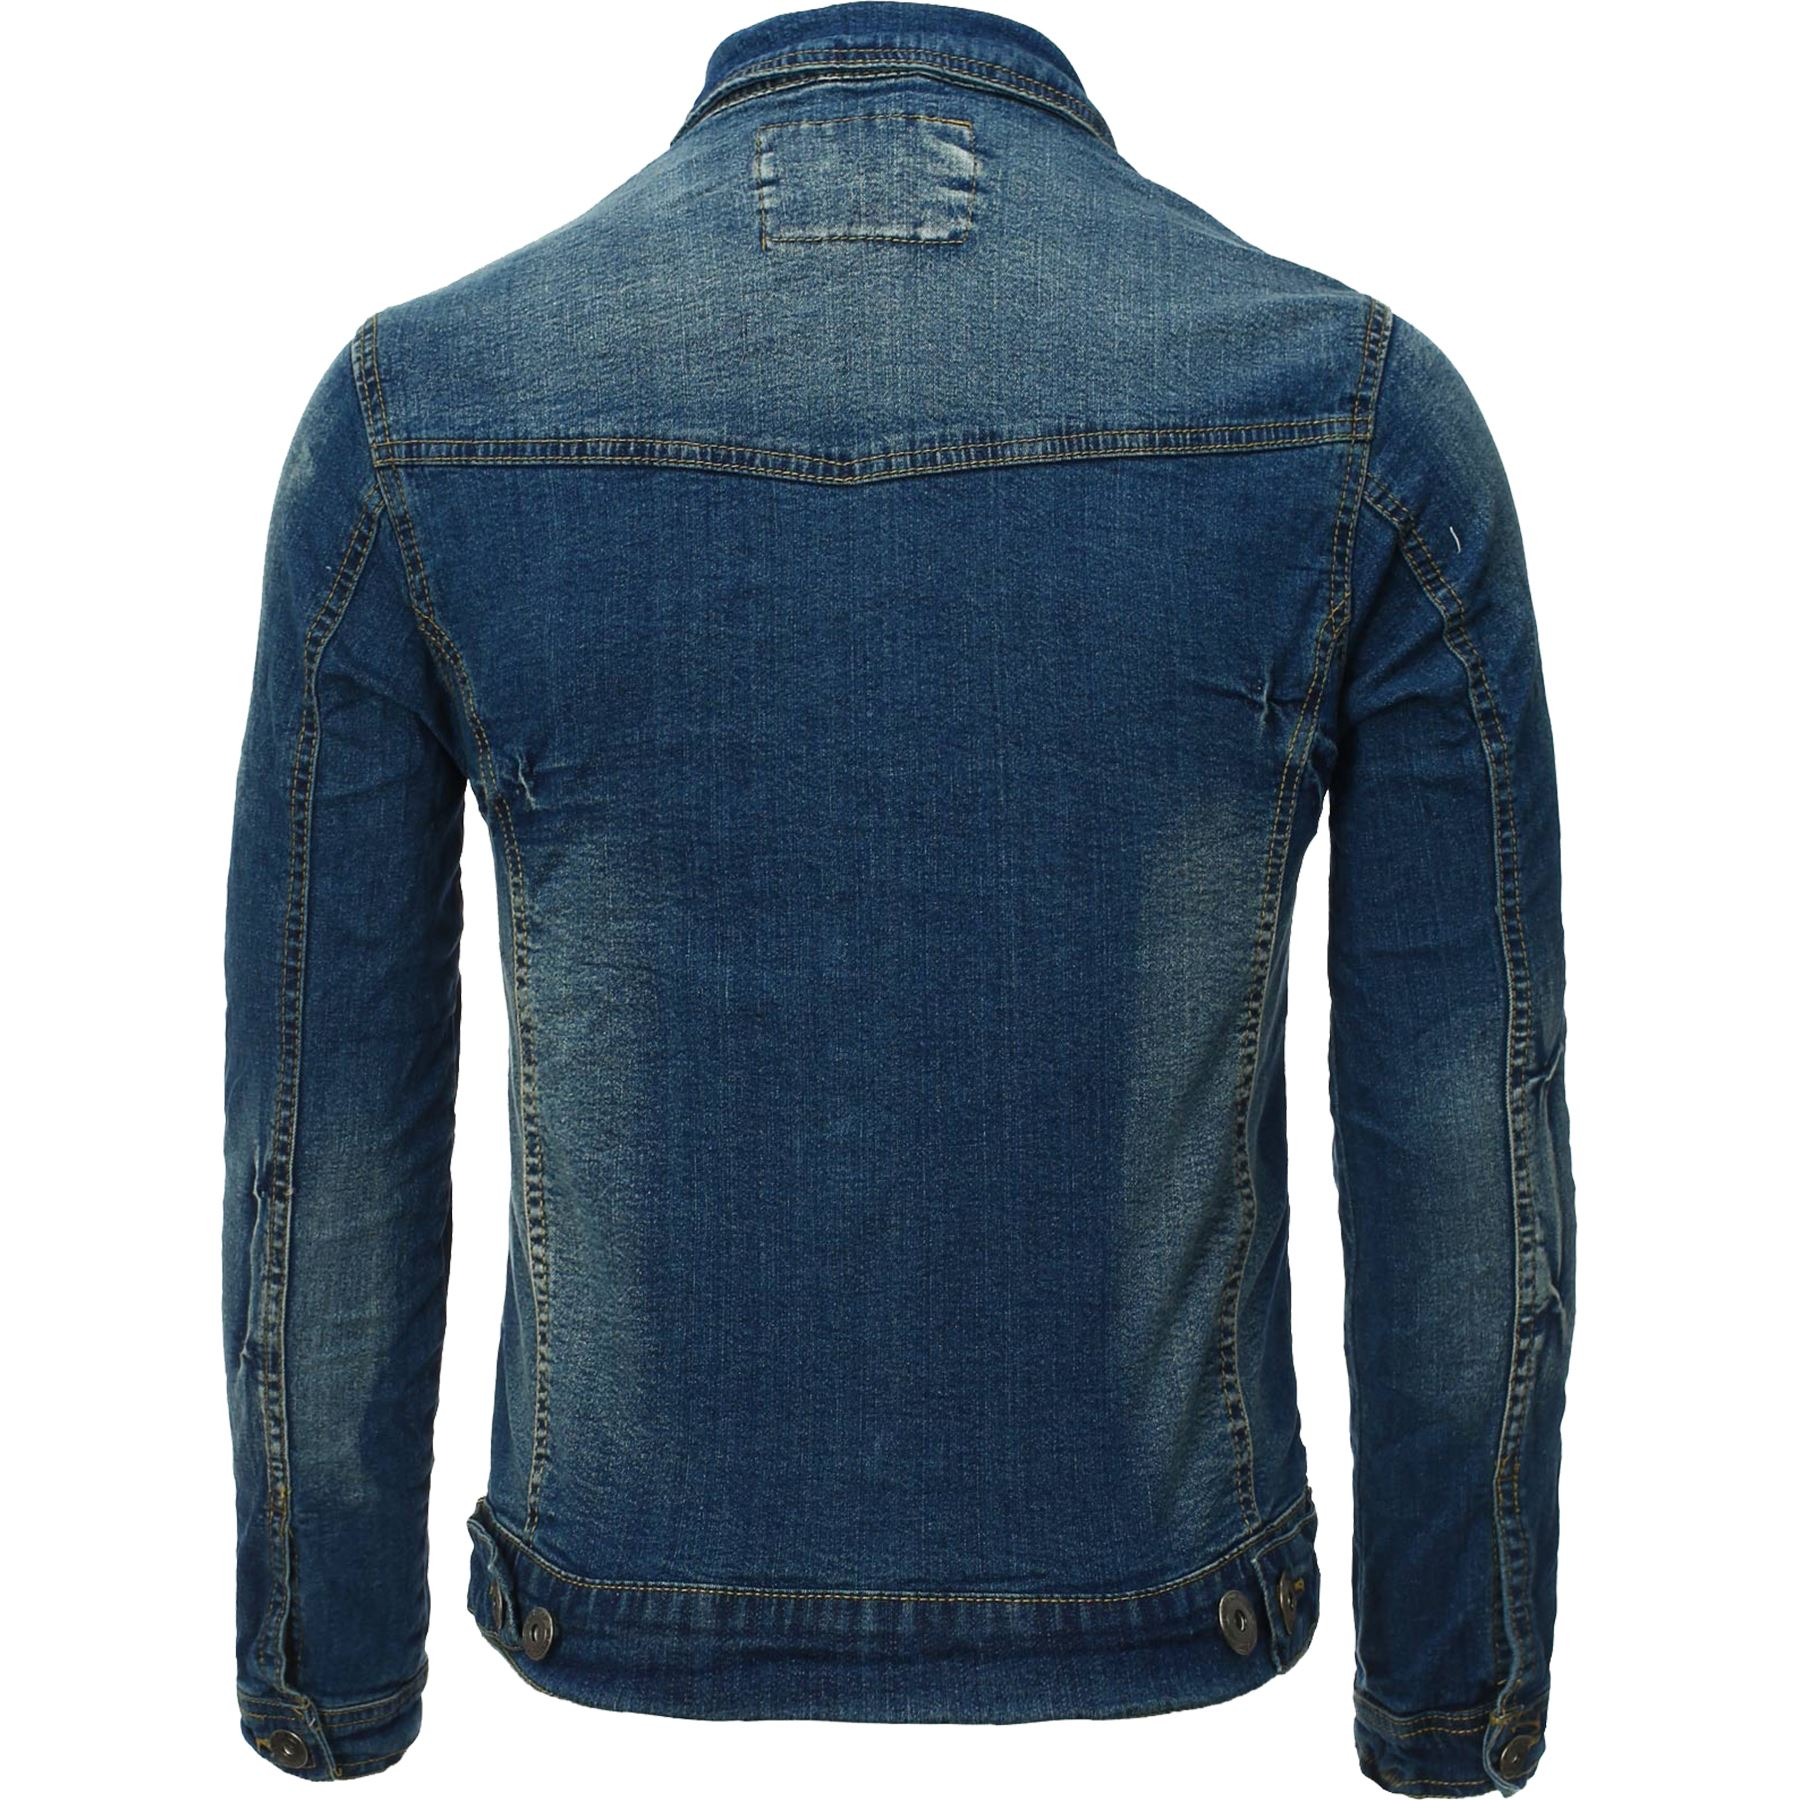 Mens-New-Fashion-Stretch-Jean-Denim-Trucker-Jacket-Dark-Wash-Distressed-Vintage thumbnail 3